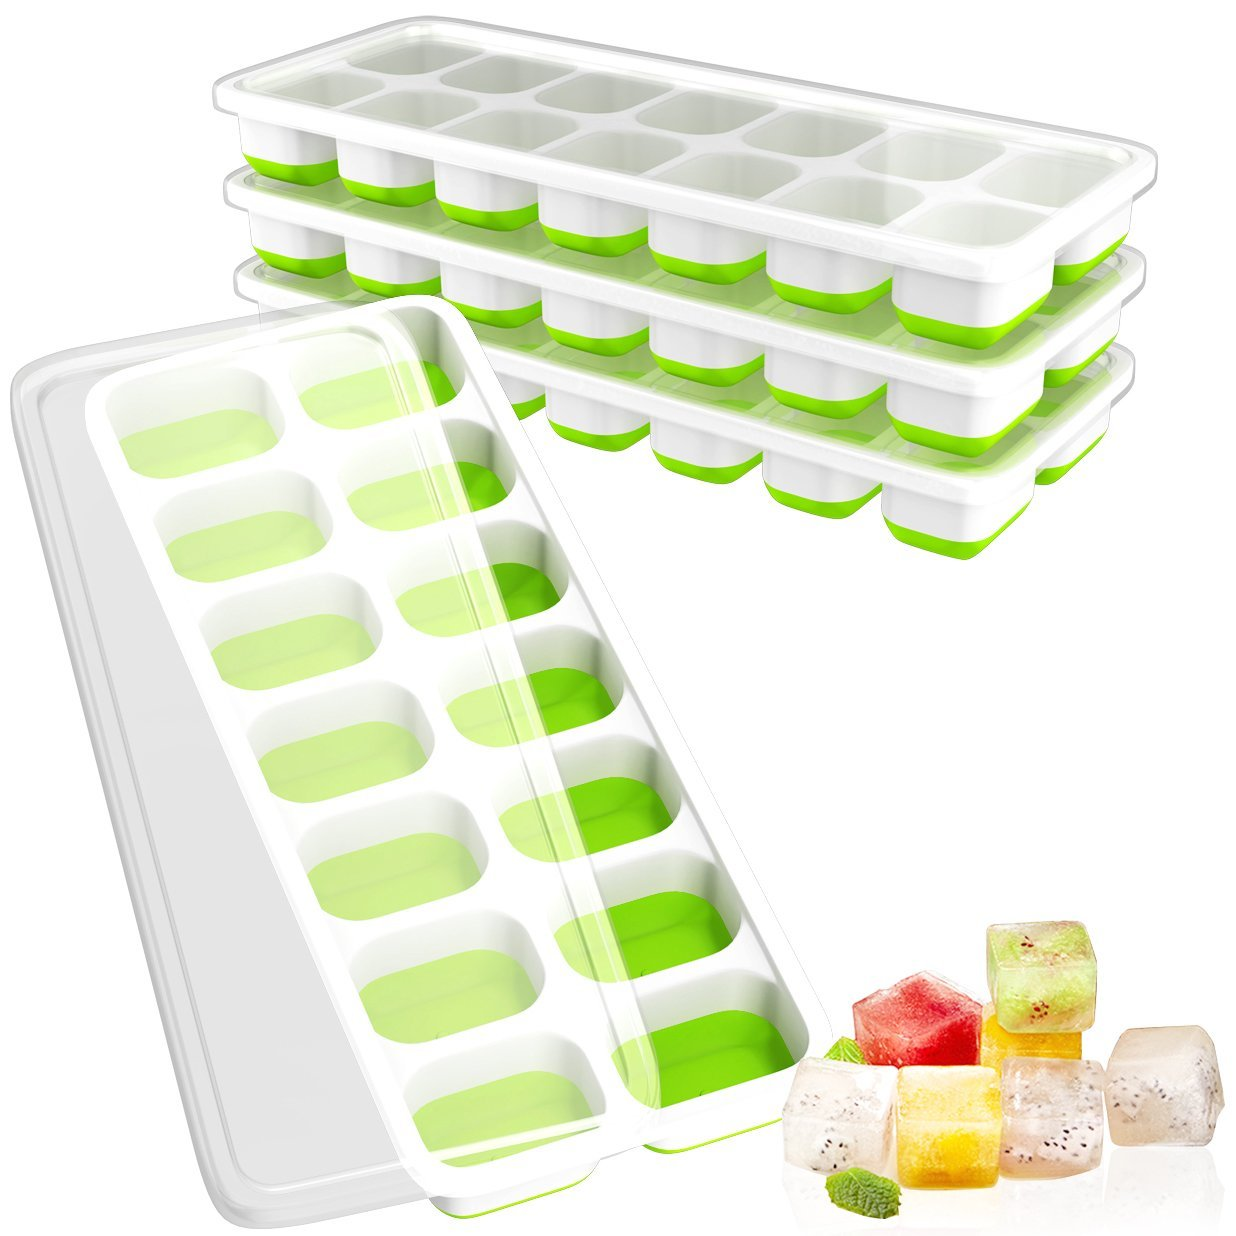 Ouddy 4 Pack Ice Cube Trays with Lid, Easy-Release Ice Cube Molds, 14-Silicone Ice Trays can Make 56 Ice Cubes, BPA Free Nontoxic and Safe, Stackable Durable and Dishwasher Safe(Green)